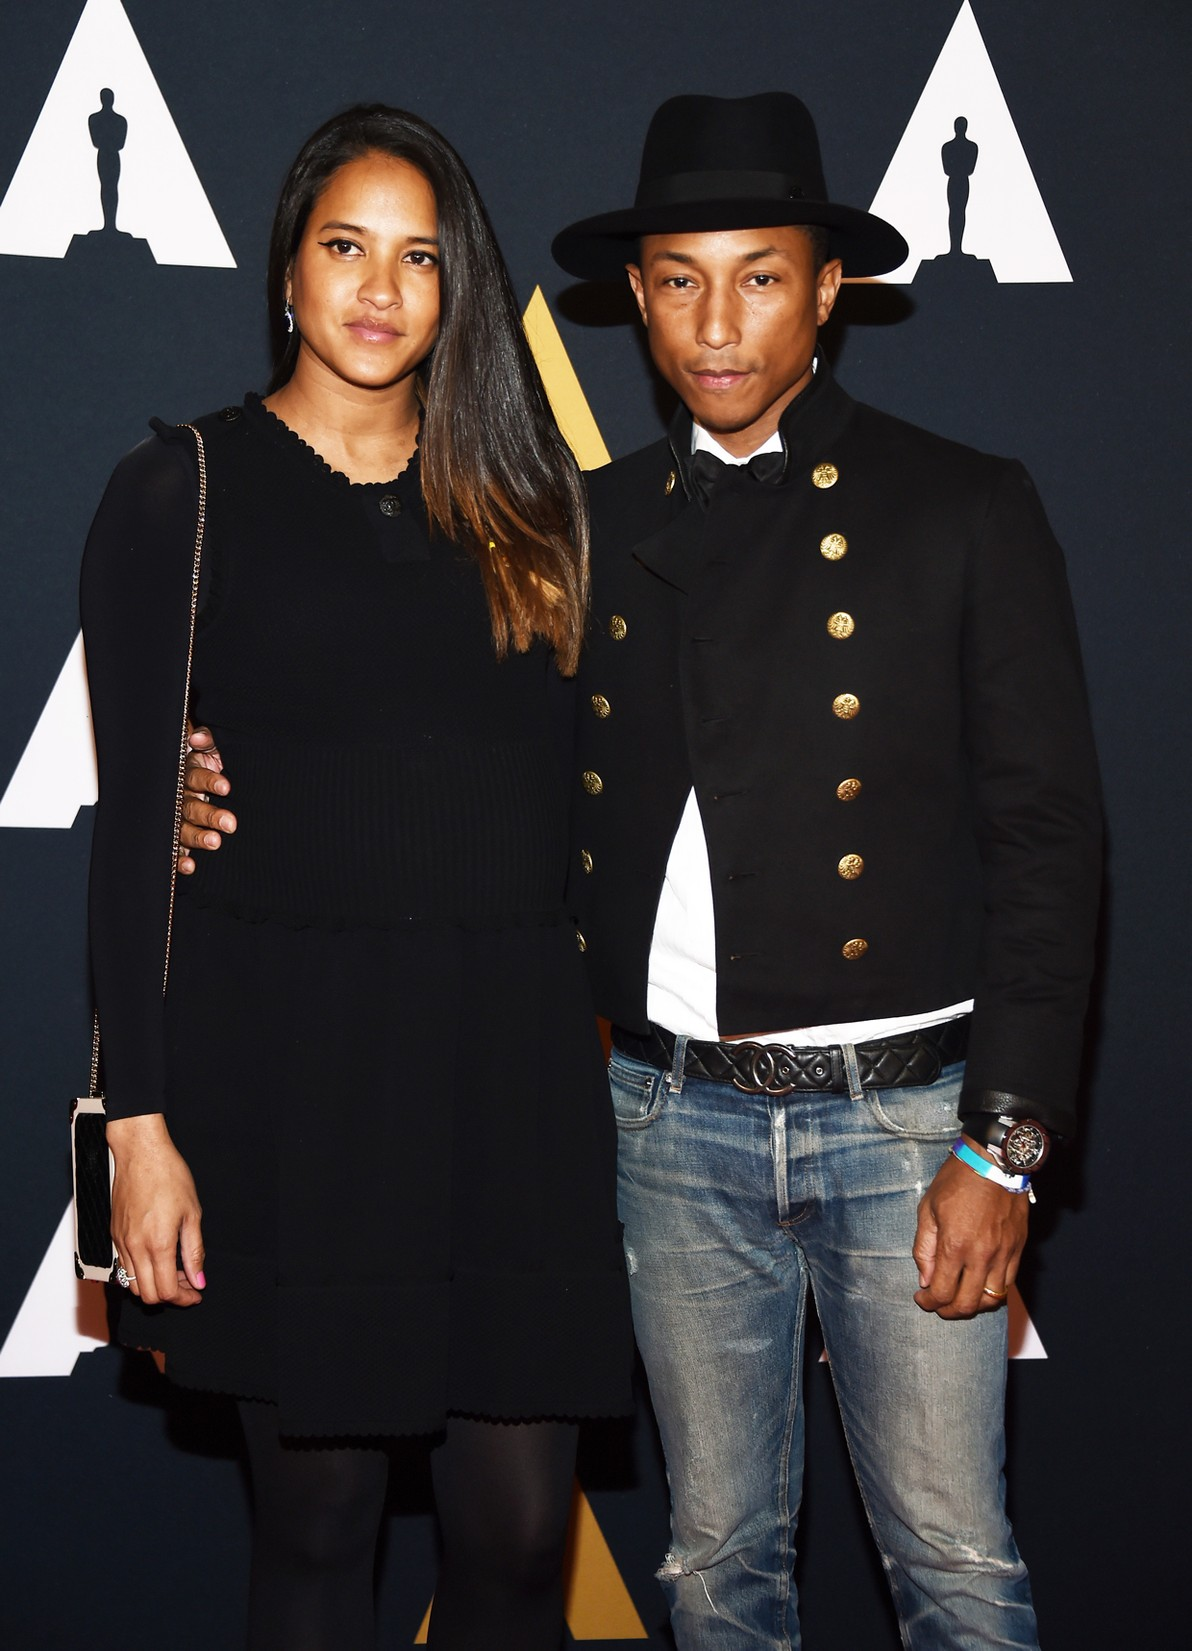 Pharrell Williams and Helen Lasichanh arrive at the Academy of Motion Picture Arts and Sciences' 8th Annual Governors Awards at The Ray Dolby Ballroom at Hollywood & Highland Center on Nov. 12, 2016 in Hollywood, Calif.